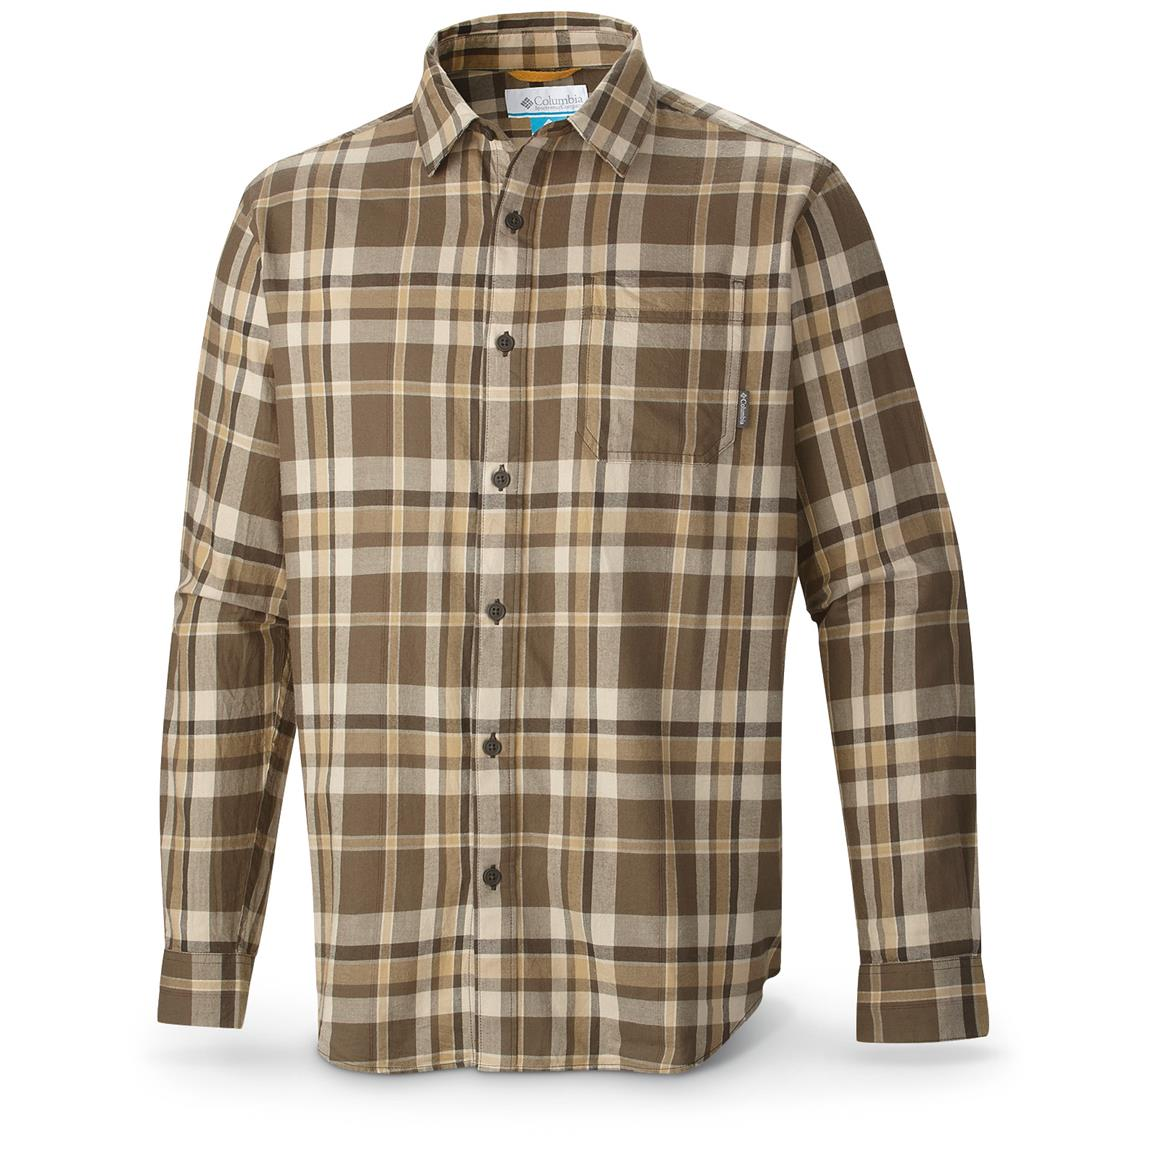 Columbia Vapor Ridge III Shirt, Long-sleeved, Fossil Twill